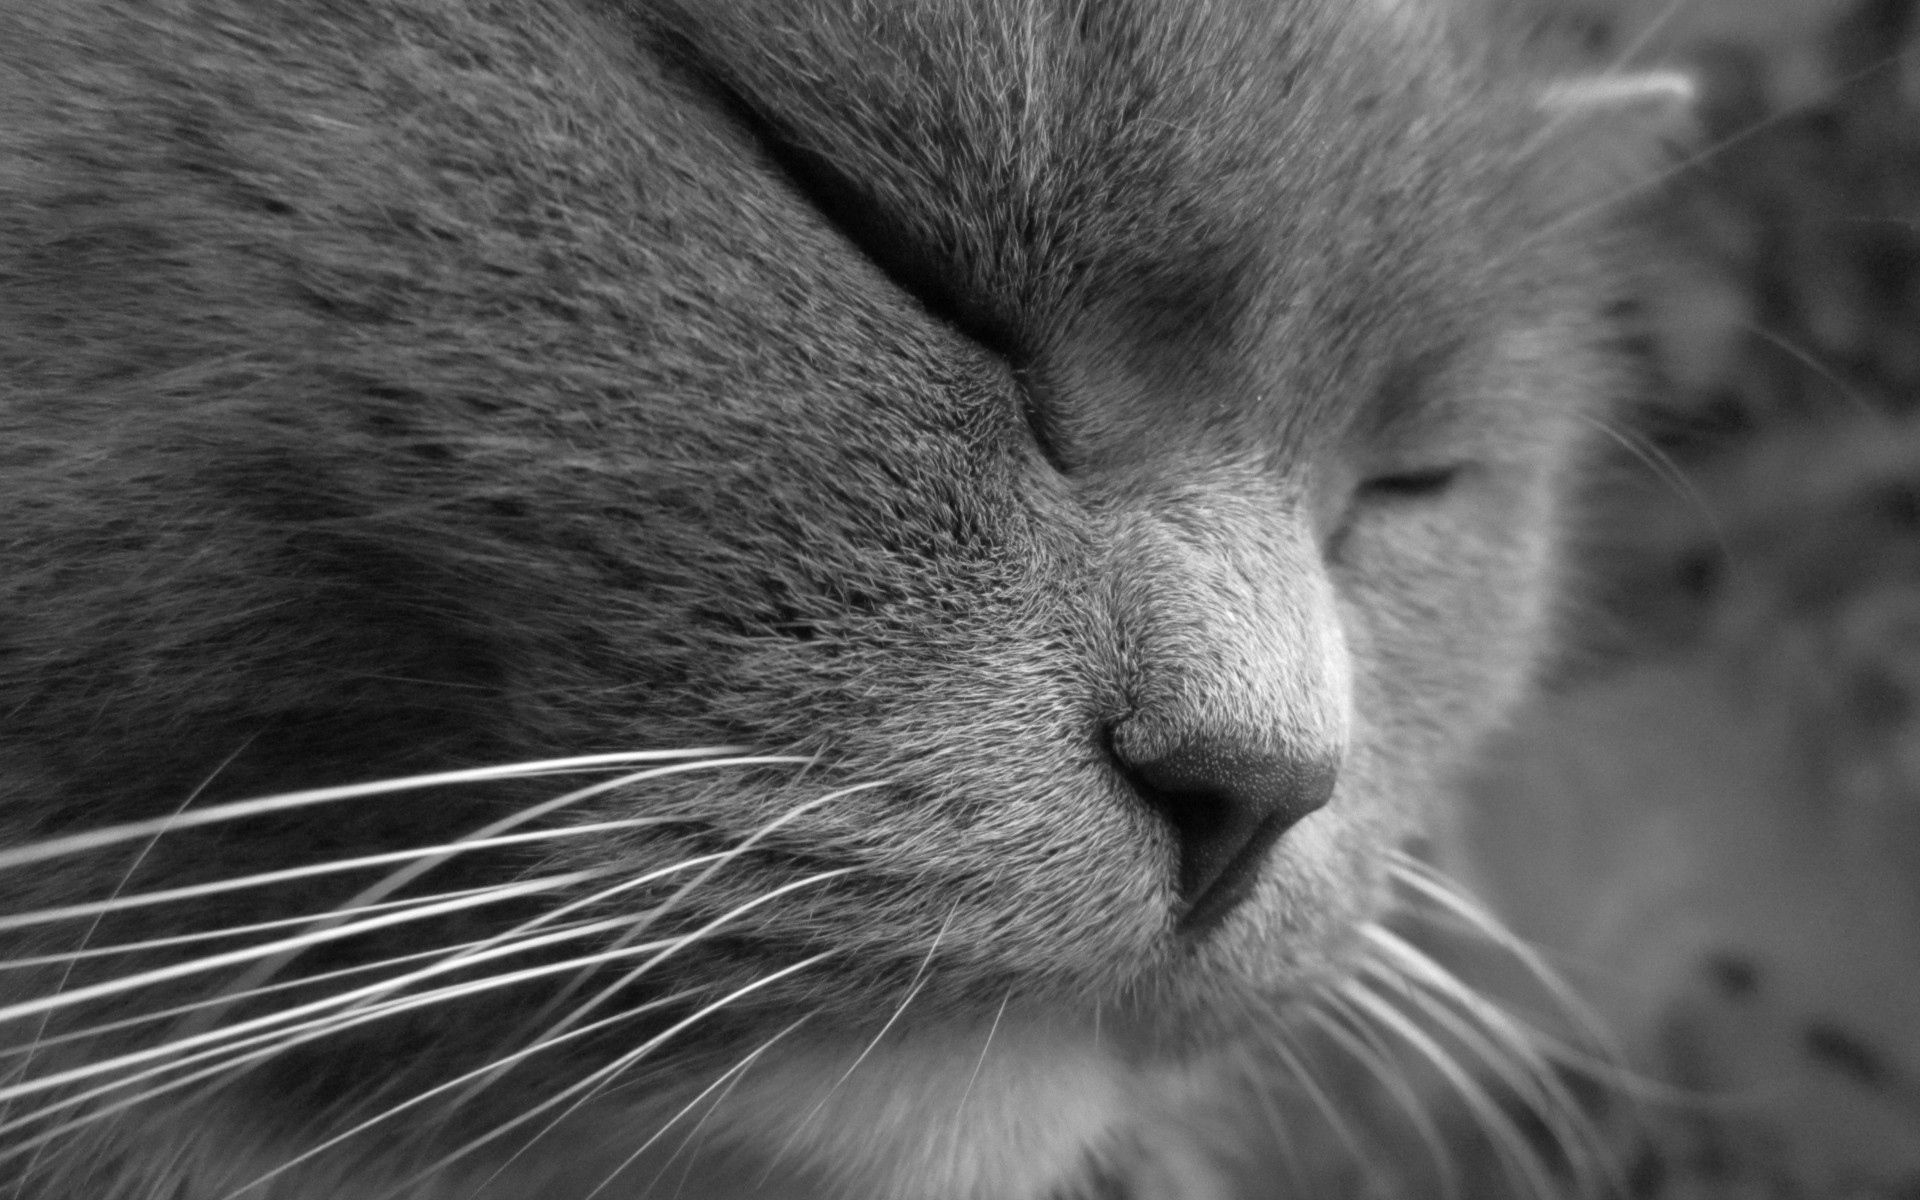 94963 download wallpaper Animals, Cat, Muzzle, Sight, Opinion, Sleep, Dream, Squint, Blink screensavers and pictures for free